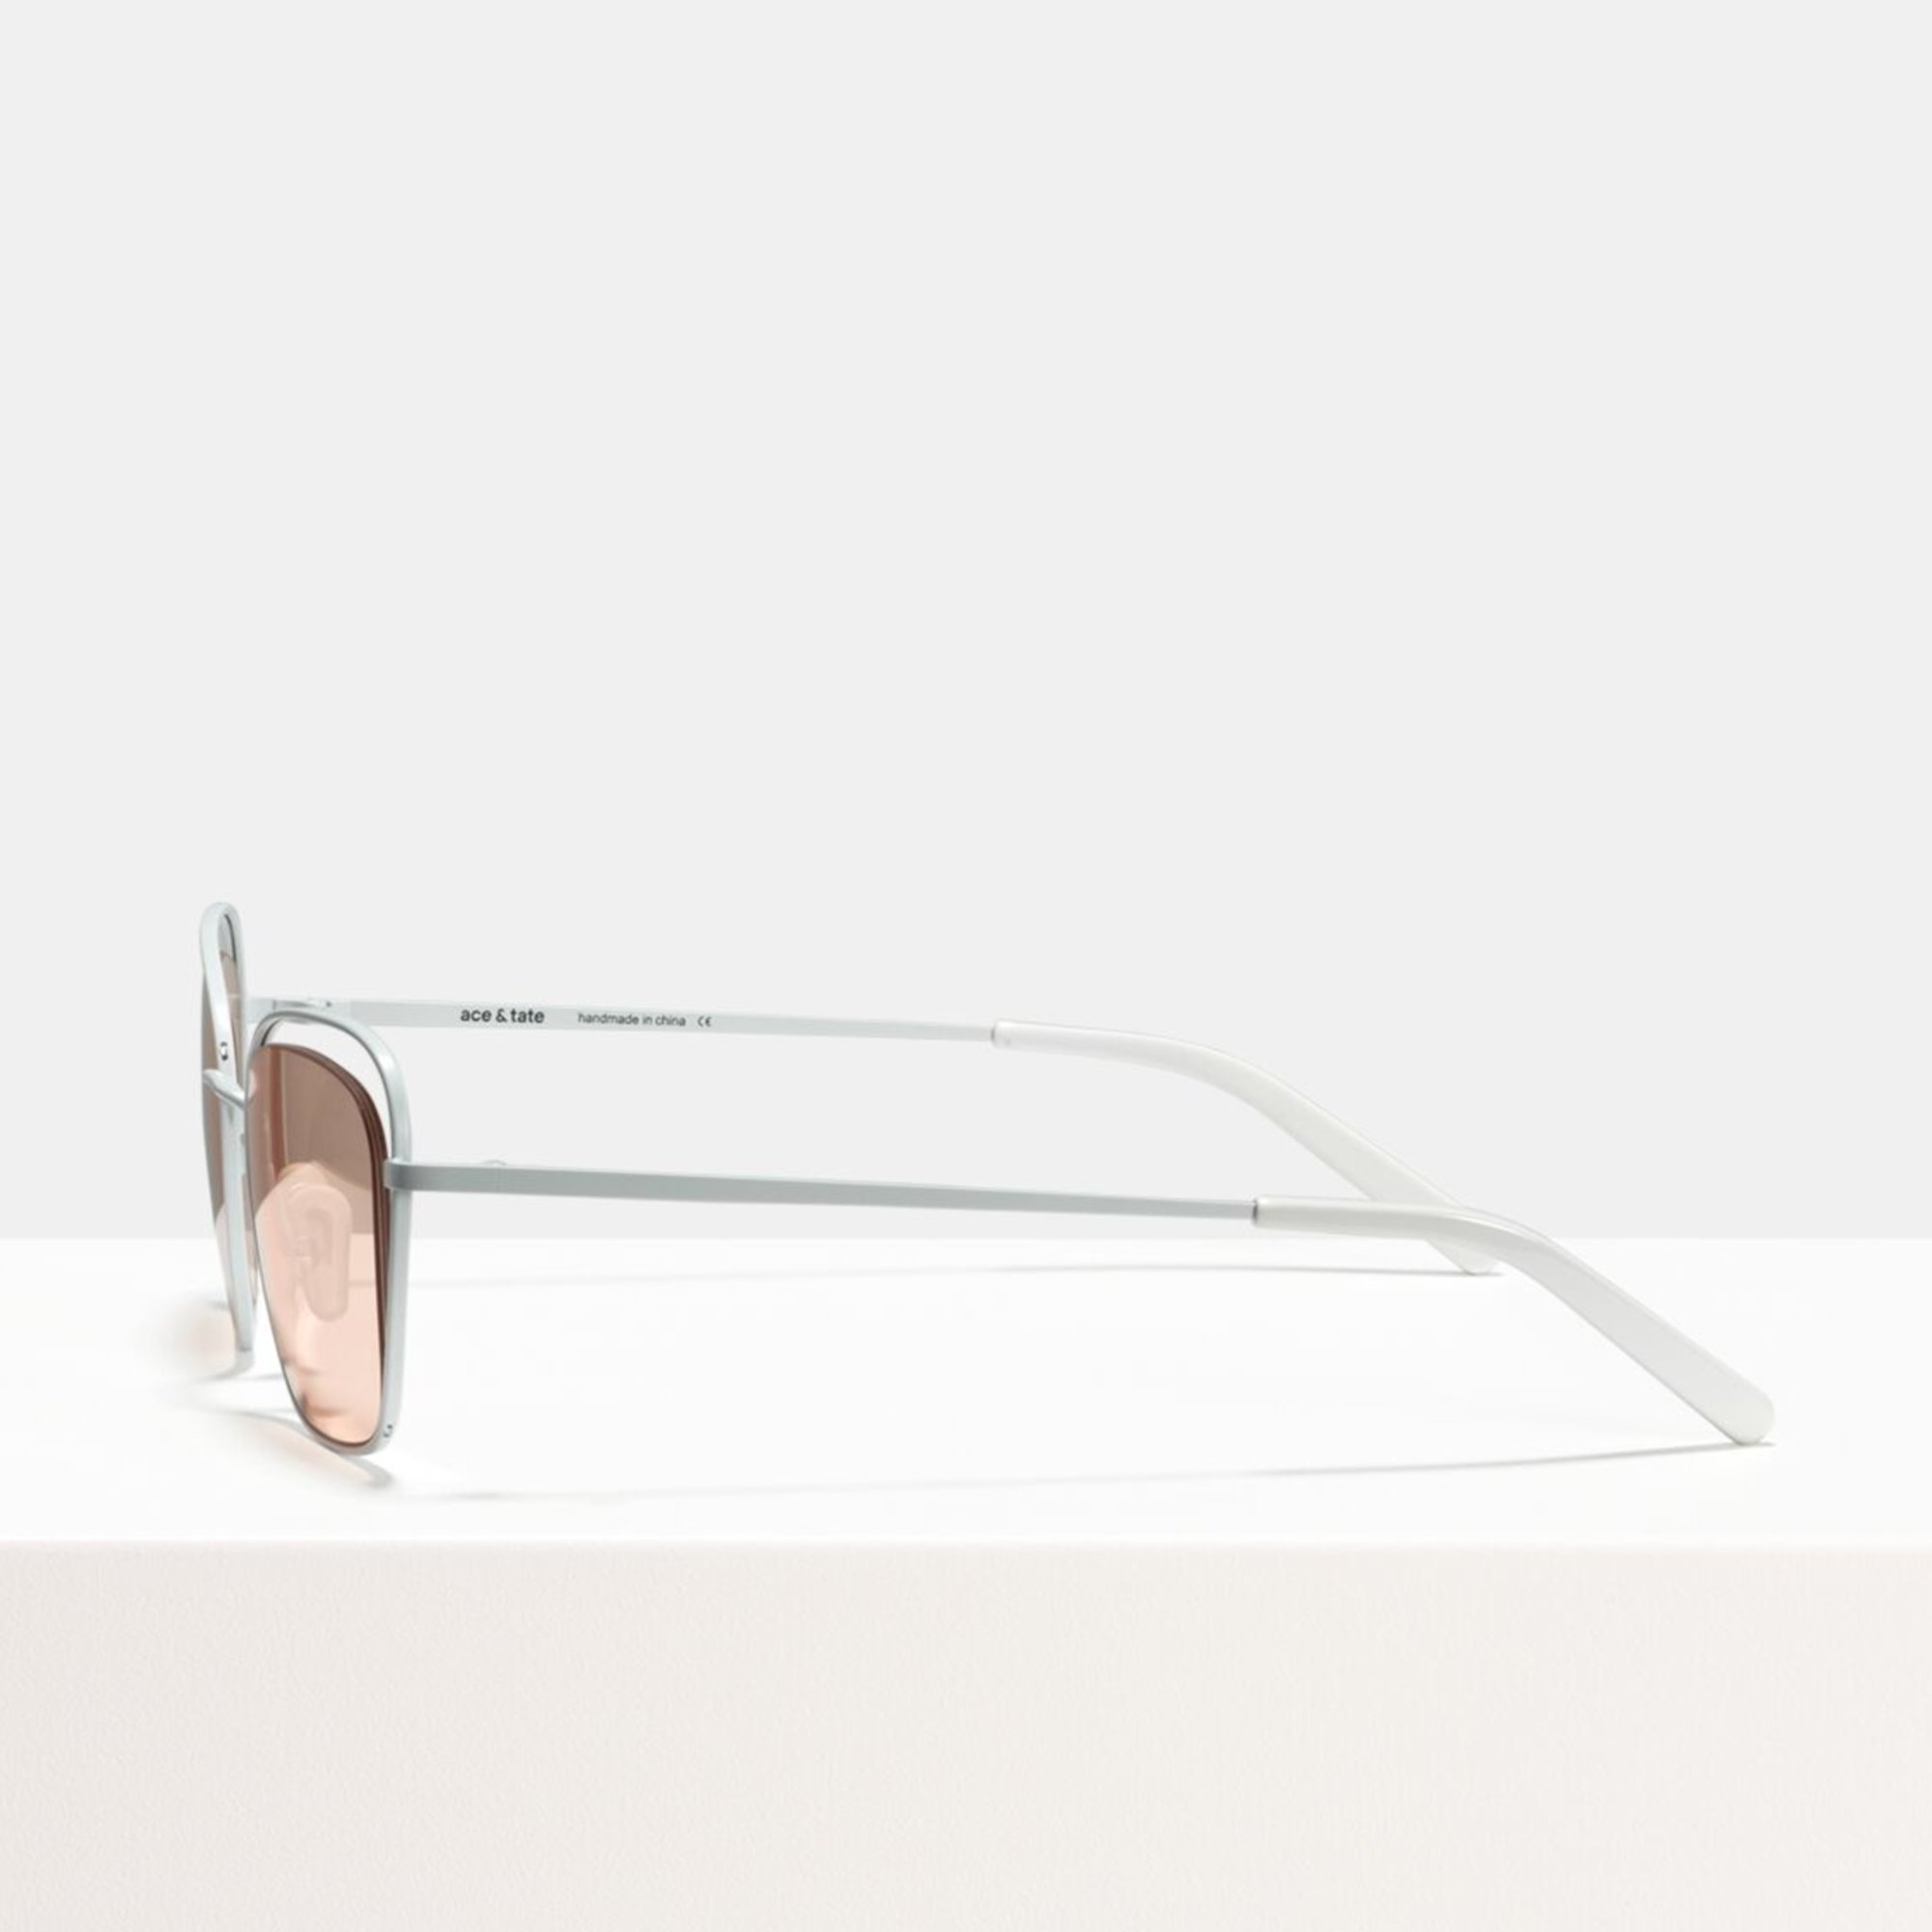 Ace & Tate Sunglasses   square metal in Pink, White